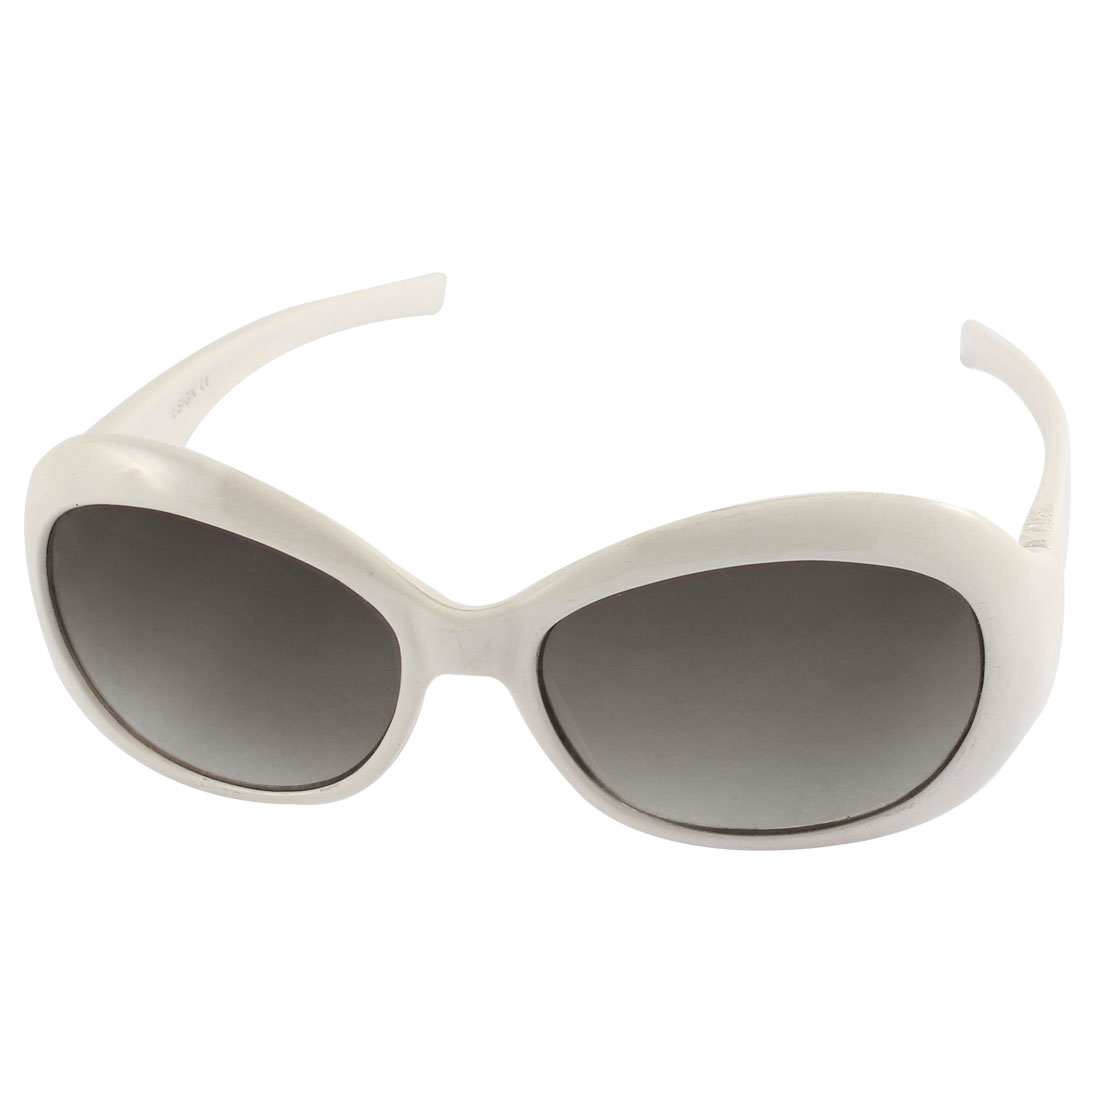 White Plastic Oval Full Frame Single Bridge Colored Lens Unisex Sunglasses